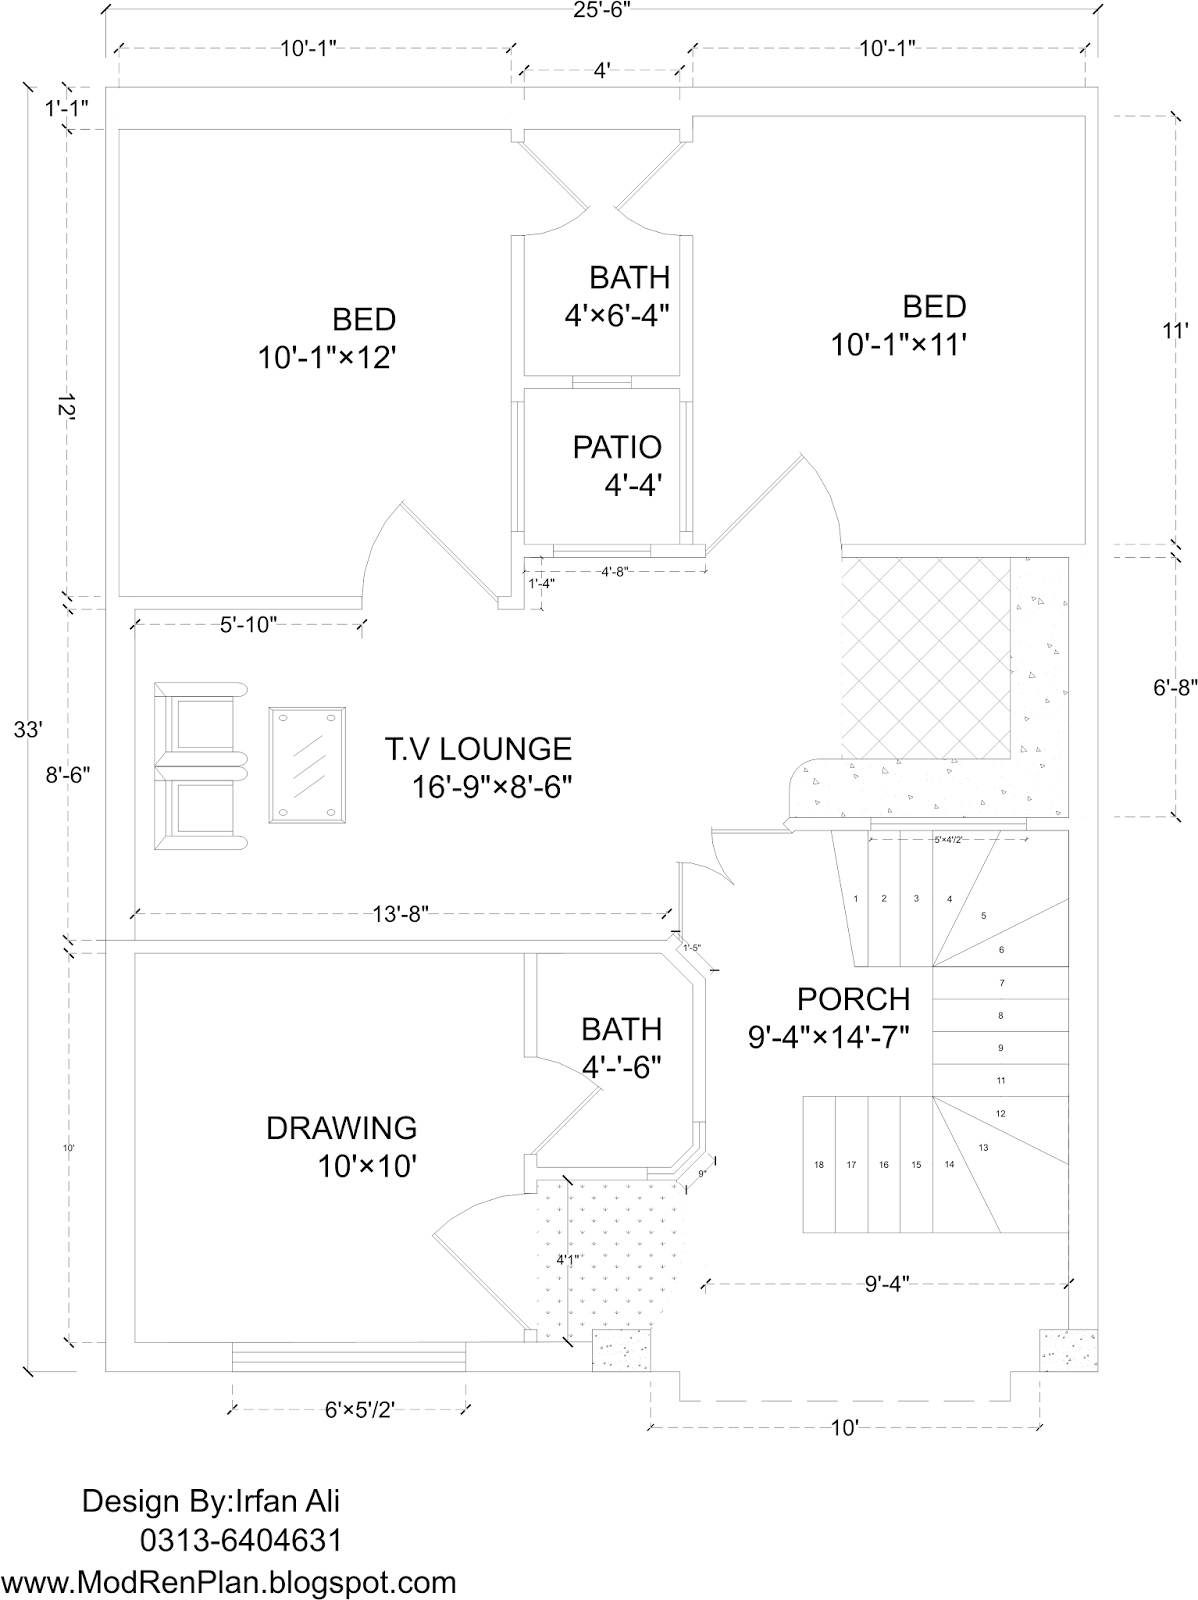 5 Marla House Plan And Map With Detail 25x33 Plan